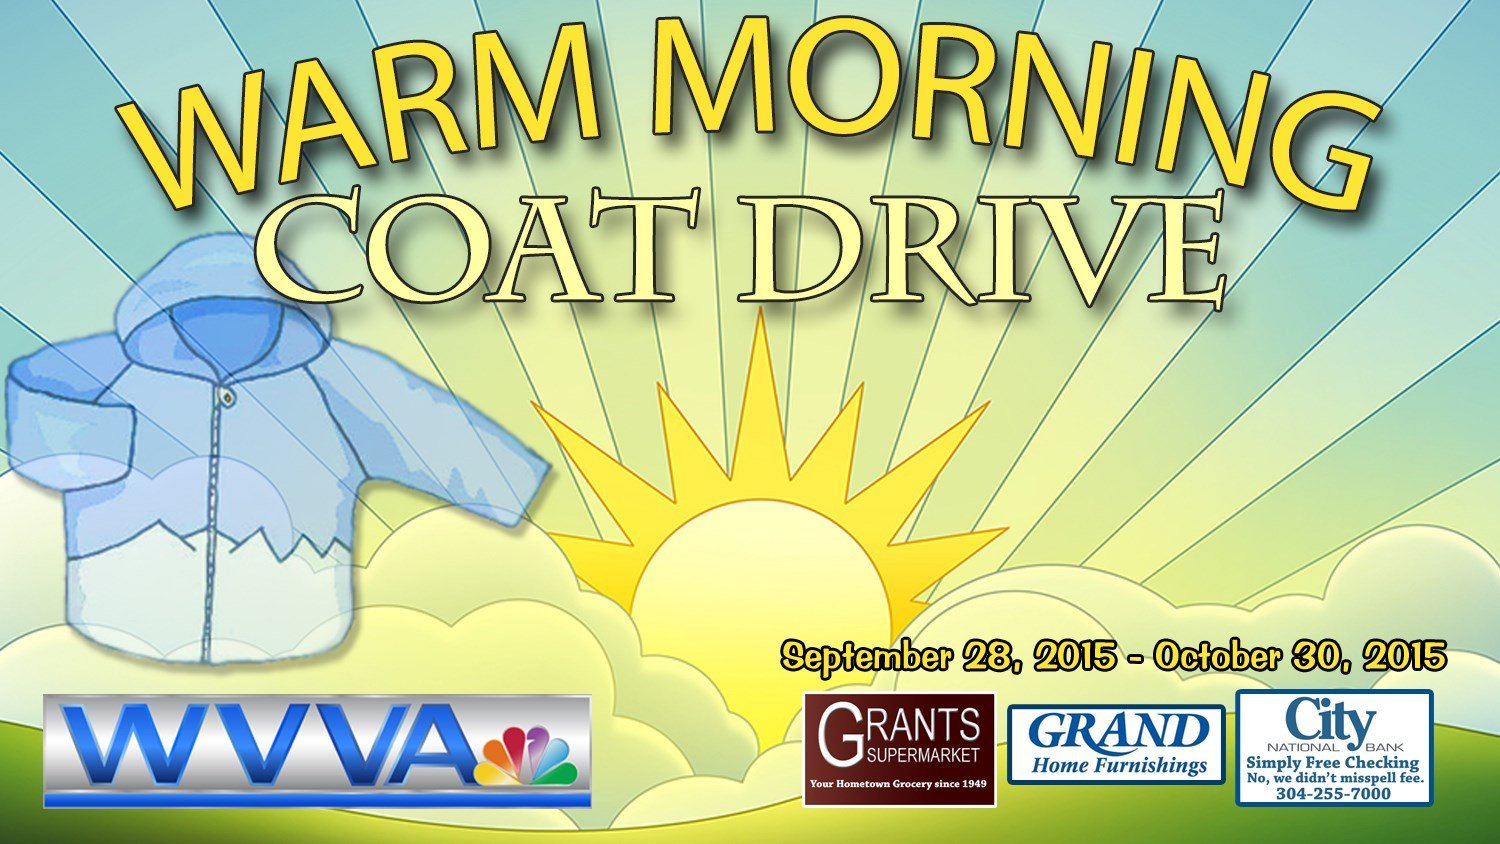 Wvva 39 s 2015 warm morning coat drive wvva tv bluefield beckley wv news weather and sports National home furniture beckley wv